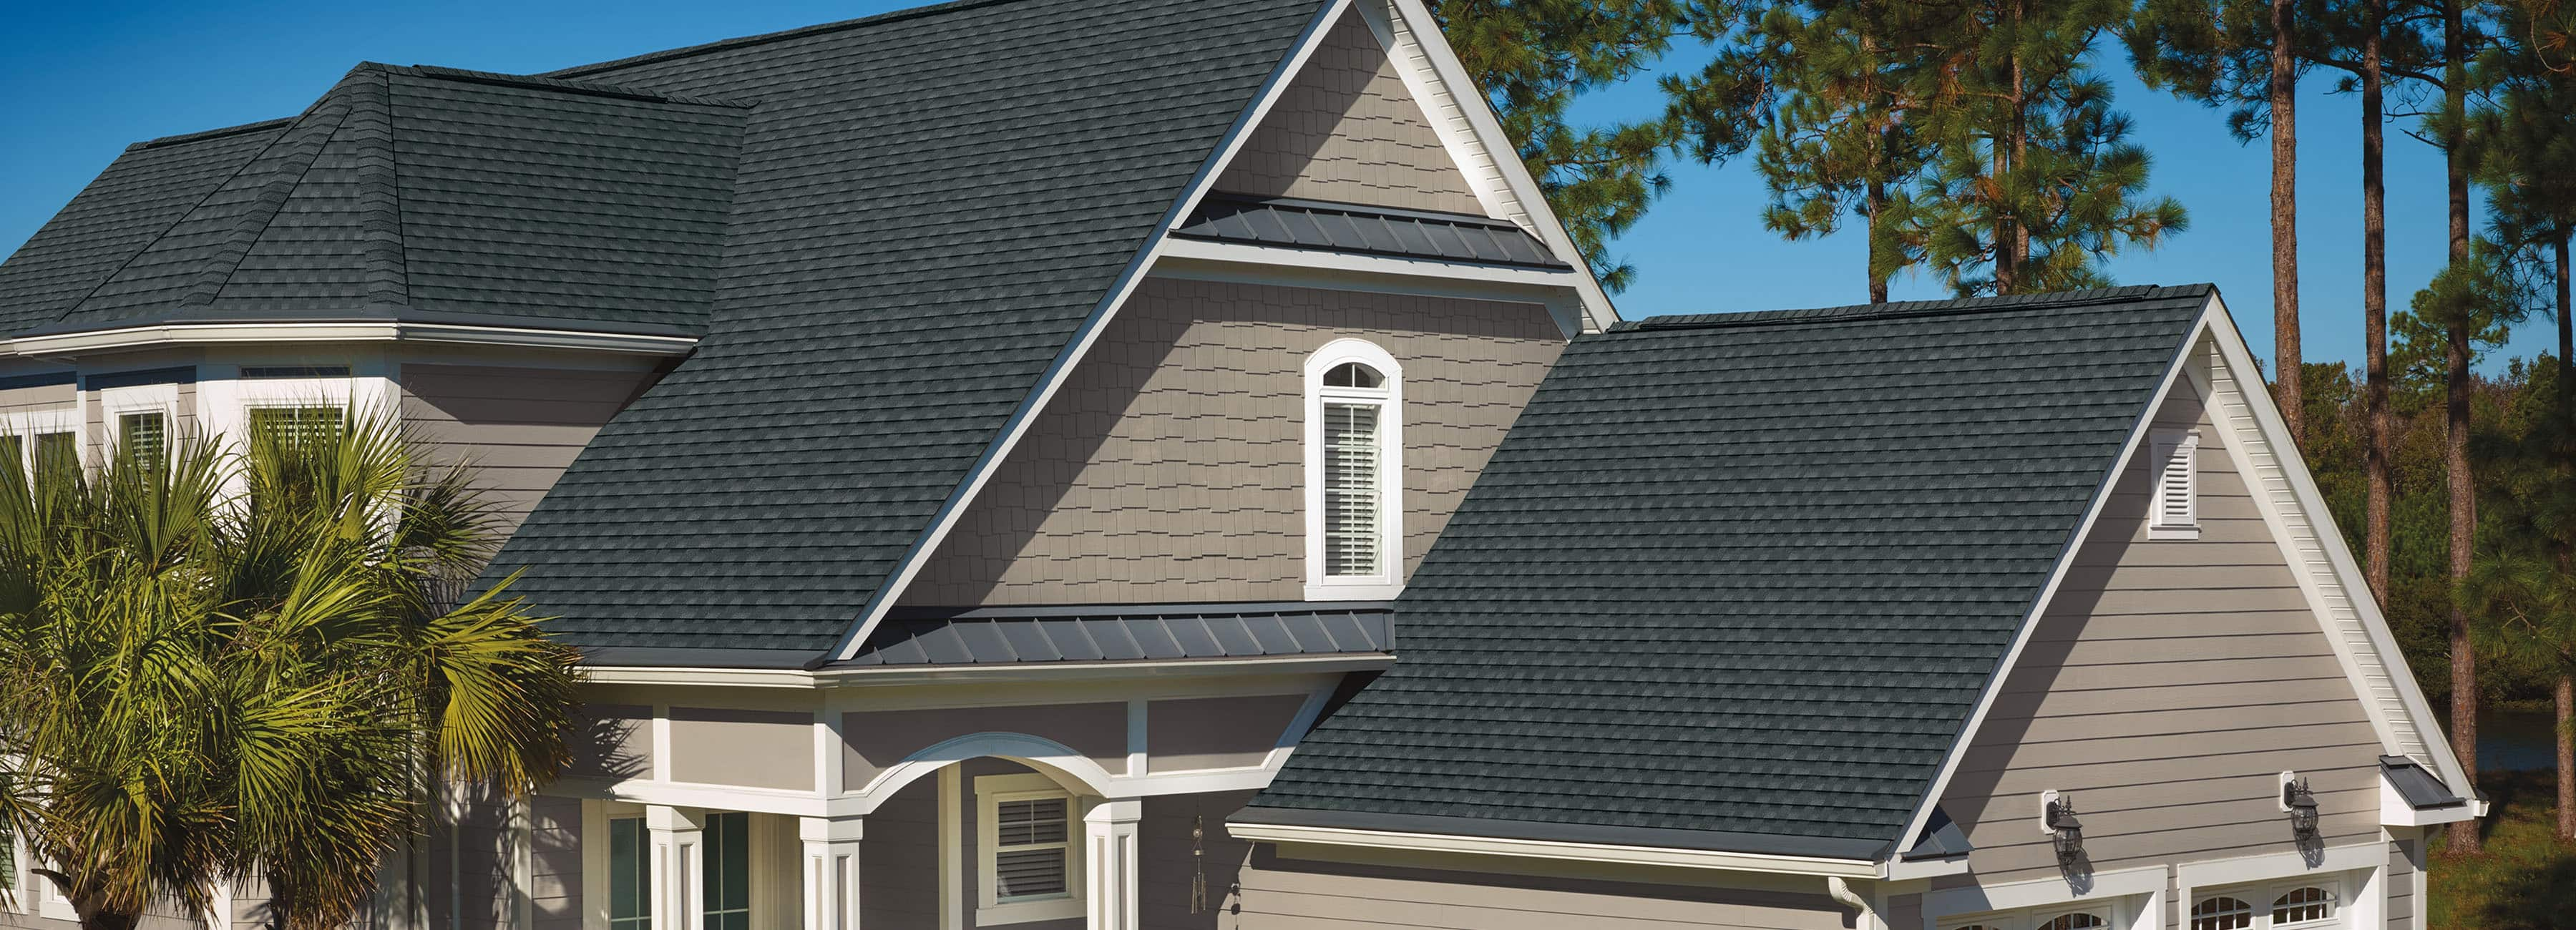 Gaf Roofing Gaf Timberline Reflector Series Roofing Shingles